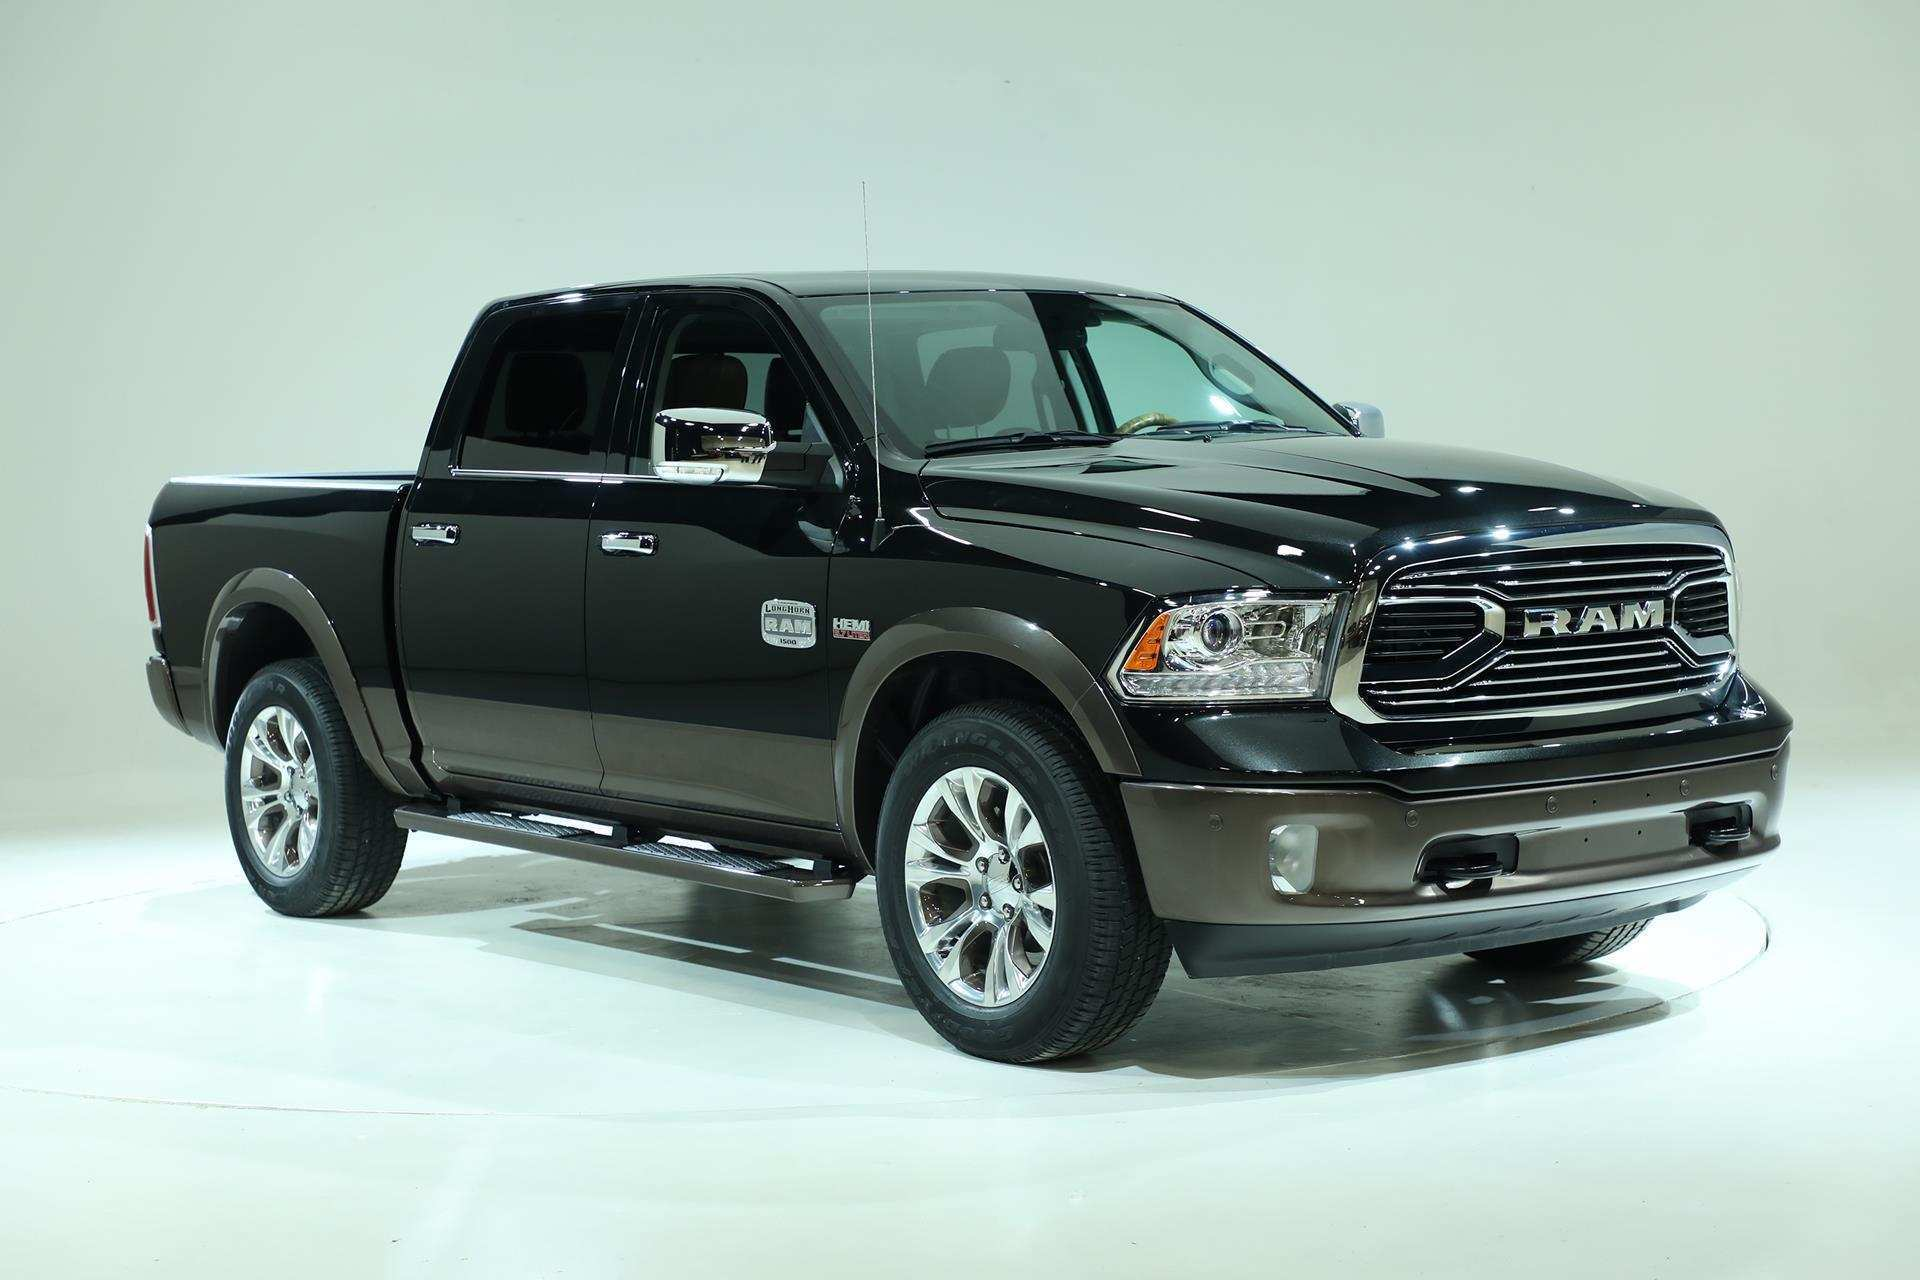 63 Concept of 2020 Dodge Ram 1500 Limited Price and Review for 2020 Dodge Ram 1500 Limited